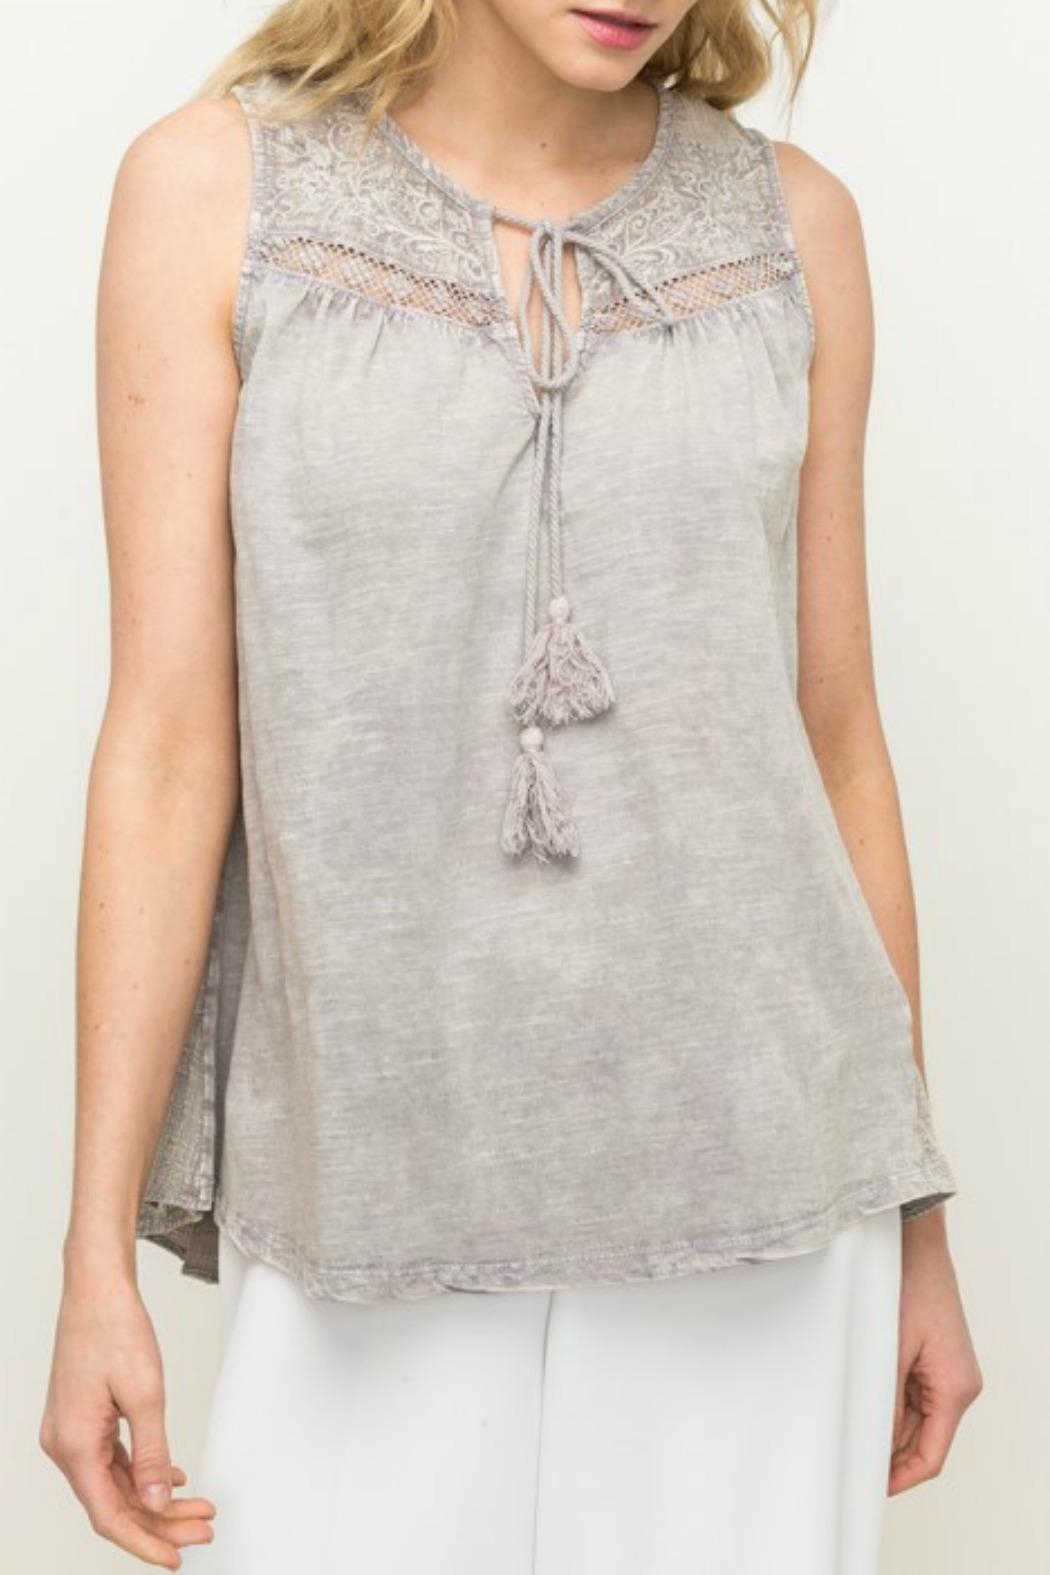 Mystree Embroidered Lace Top - Main Image